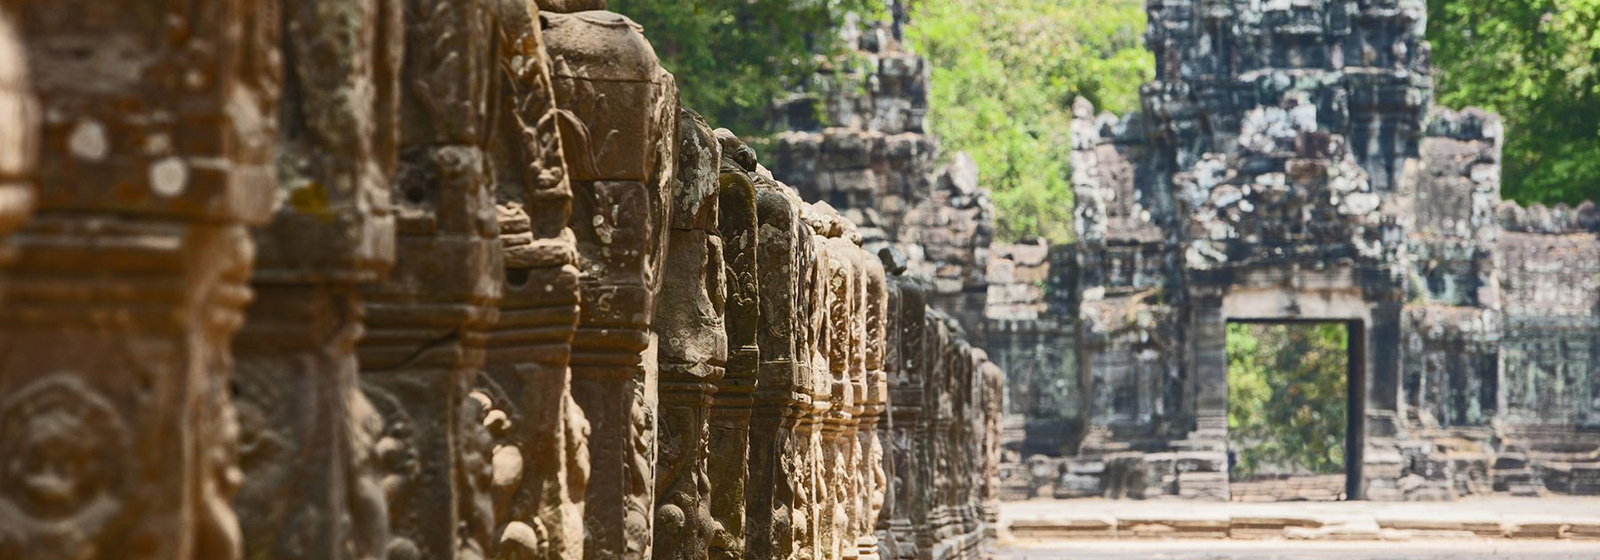 Discover the Wealth of Cambodia's Heritage and Culture